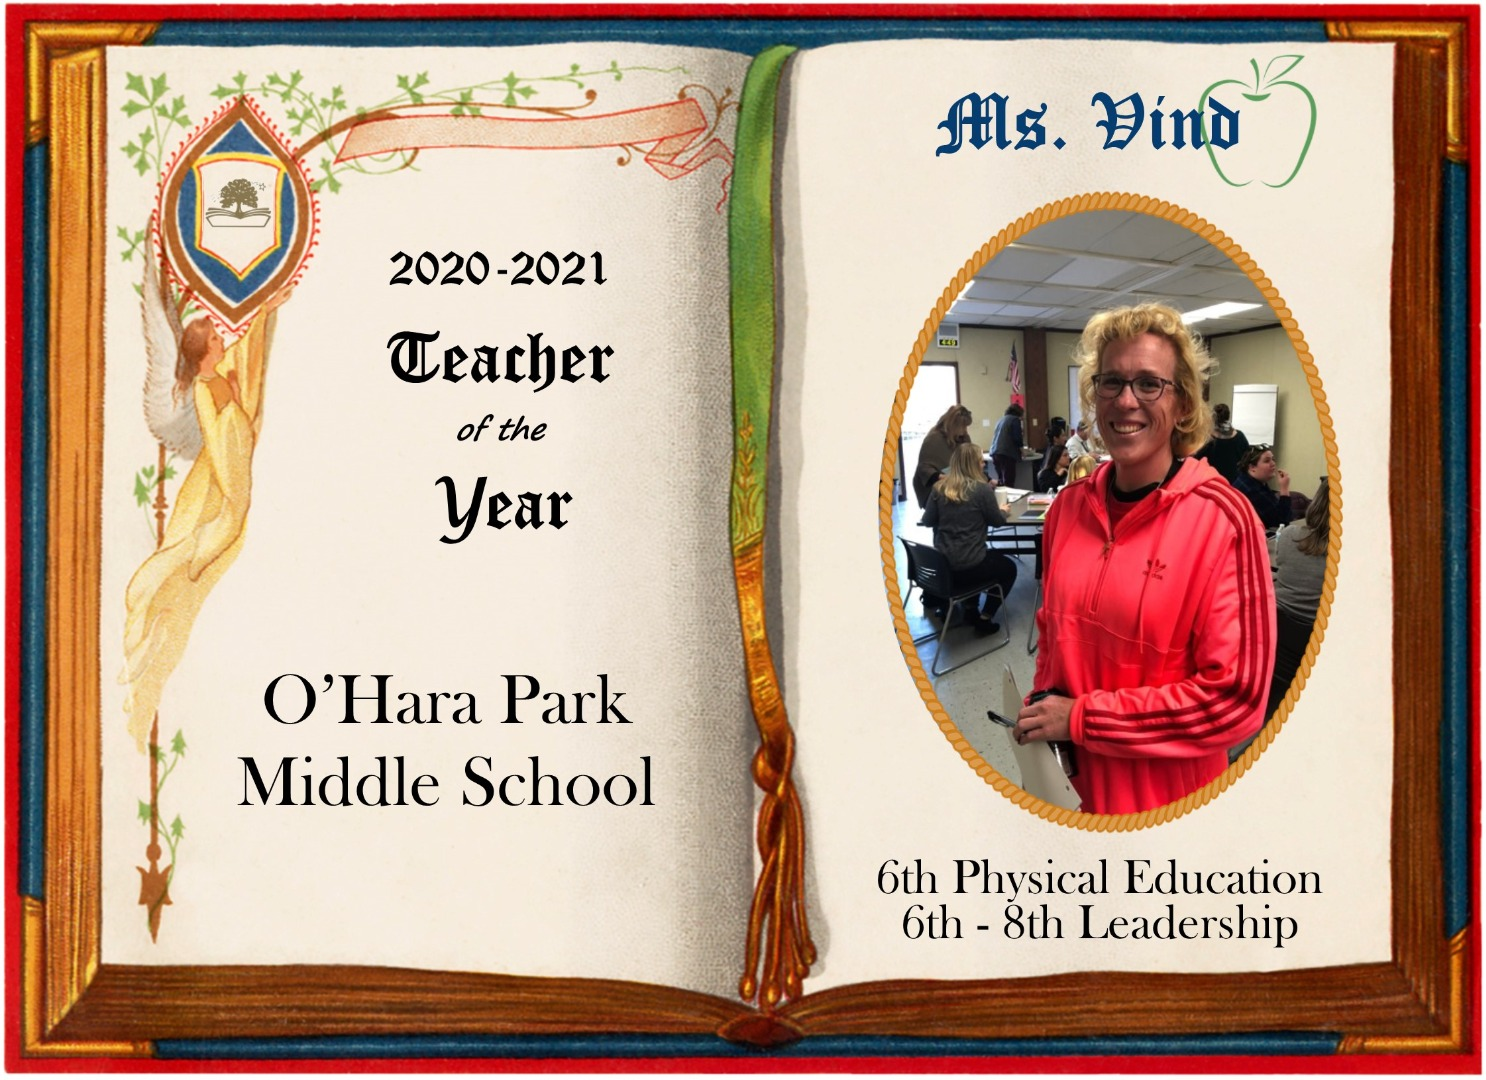 Ms. Vind, O'Hara Park Teacher of the year